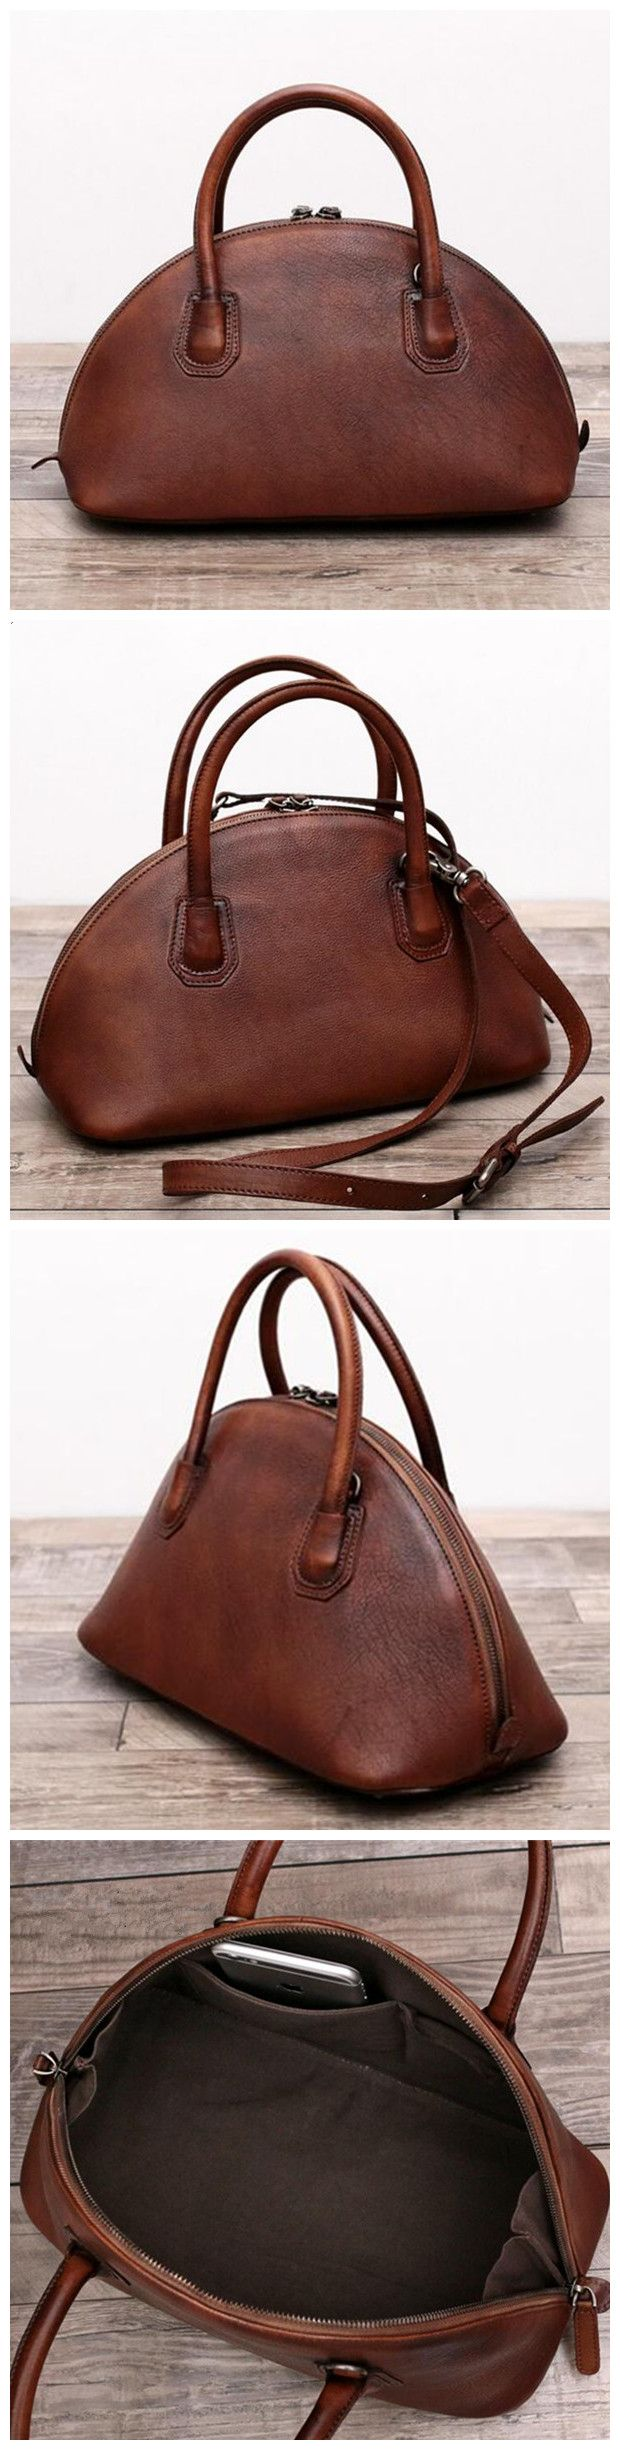 Genuine Leather Women Handbag Shoulder Bag Cross body Satchel We use genuine cow leather, quality hardware and fabric to make the bag as good as it is. •Comfortable Shoulder Strap. • Inside zipper poc